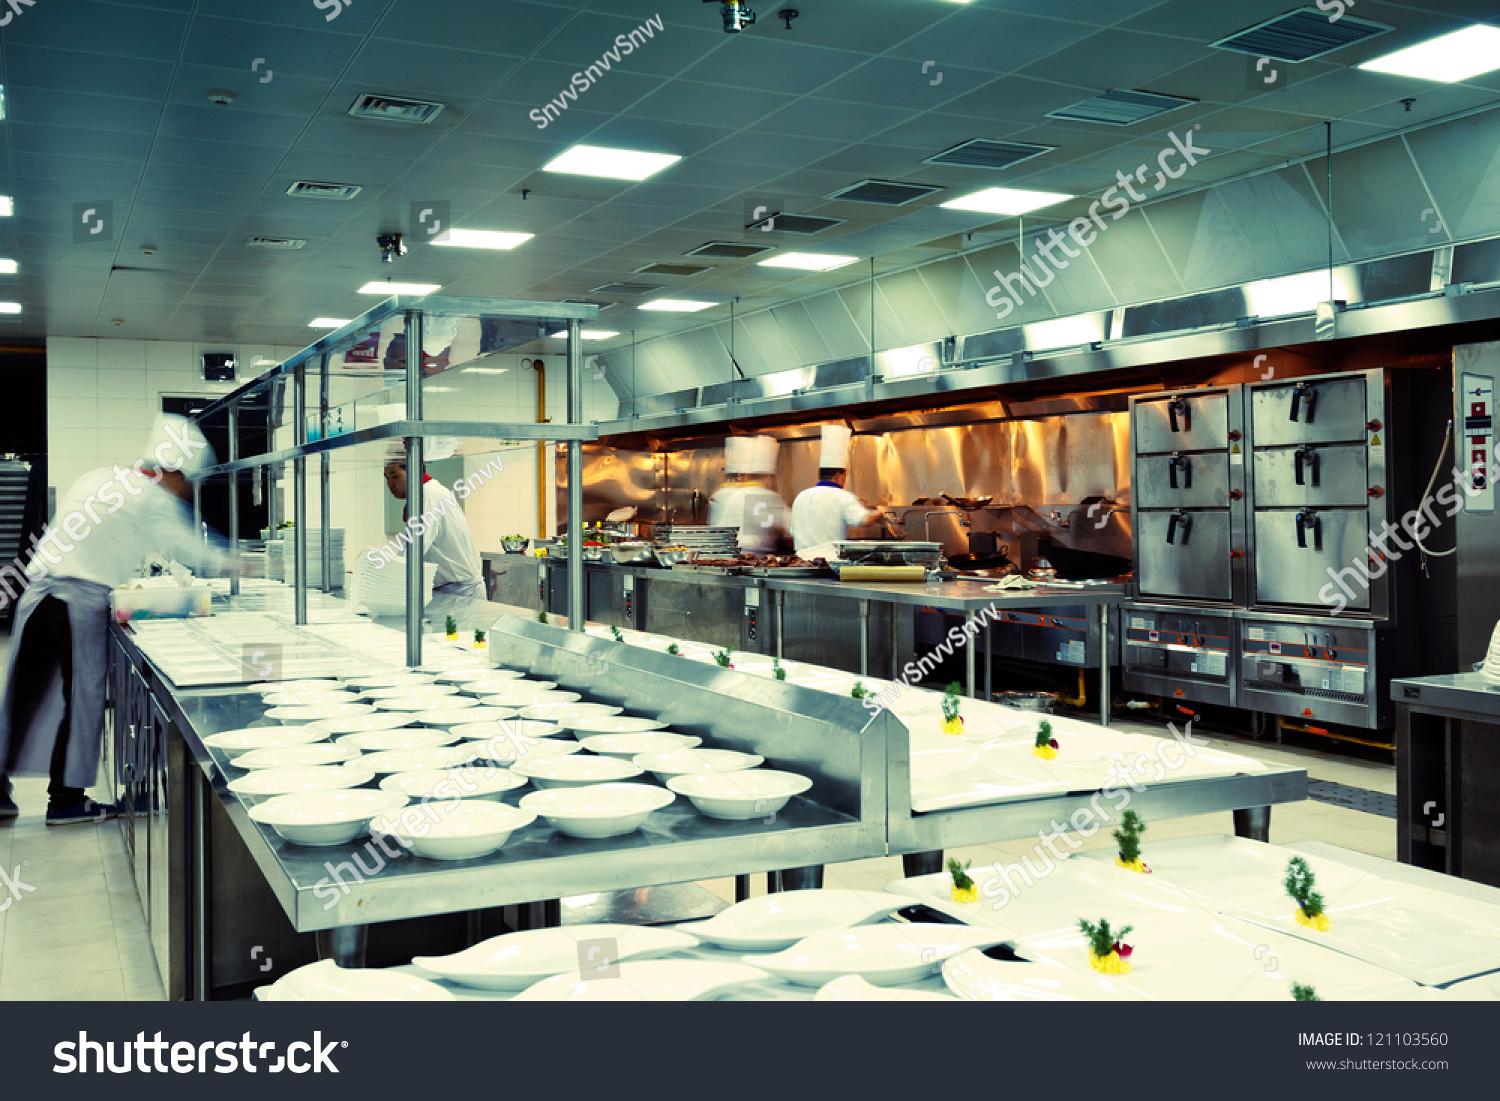 Motion chefs of a restaurant kitchen fotka 121103560 for V kitchen restaurant